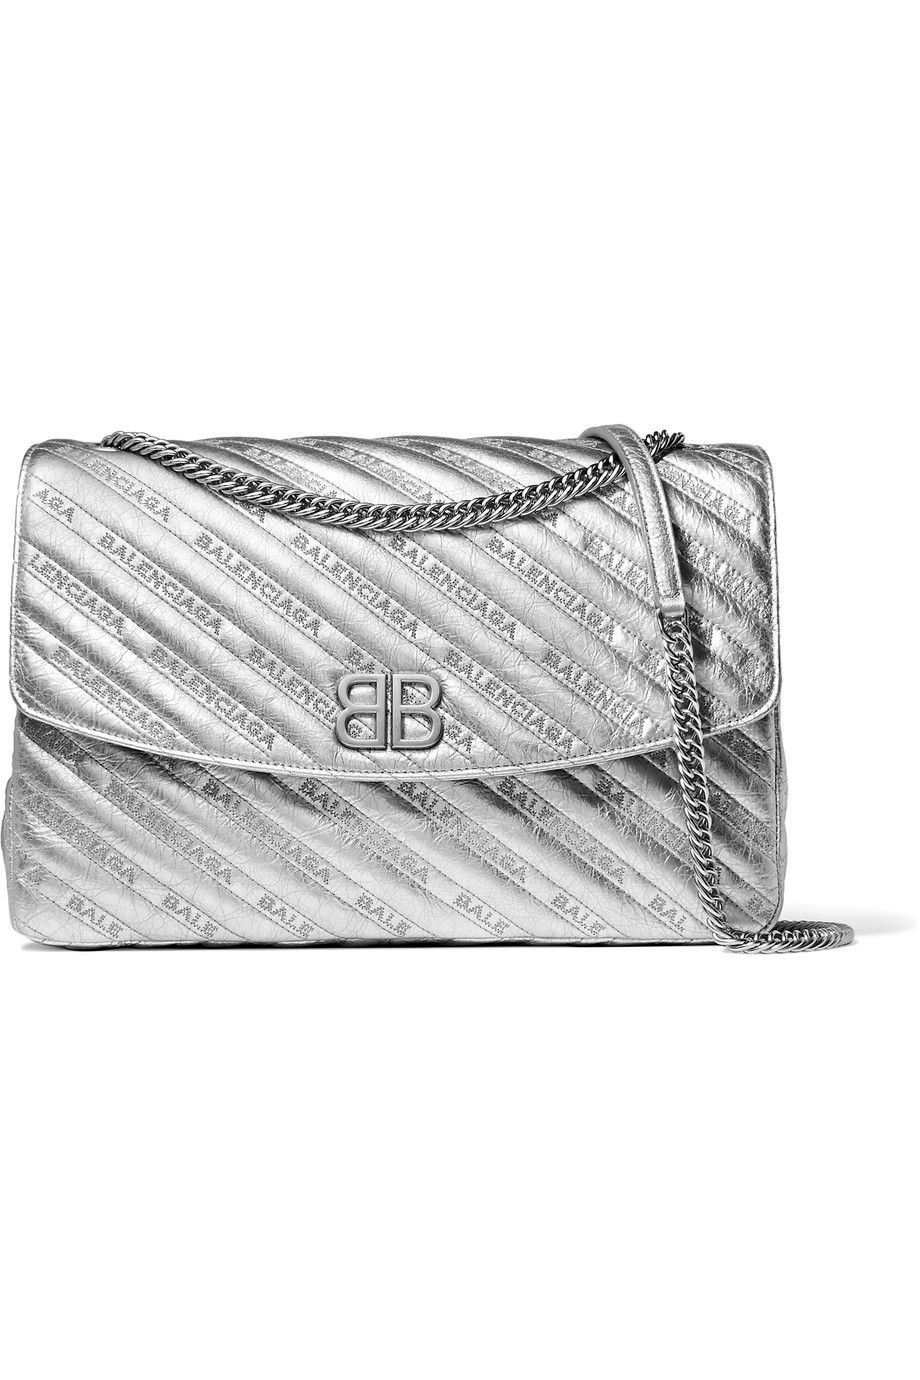 Net-A-Porter x Balenciaga BB Round large embroidered metallic textured-leather shoulder bag